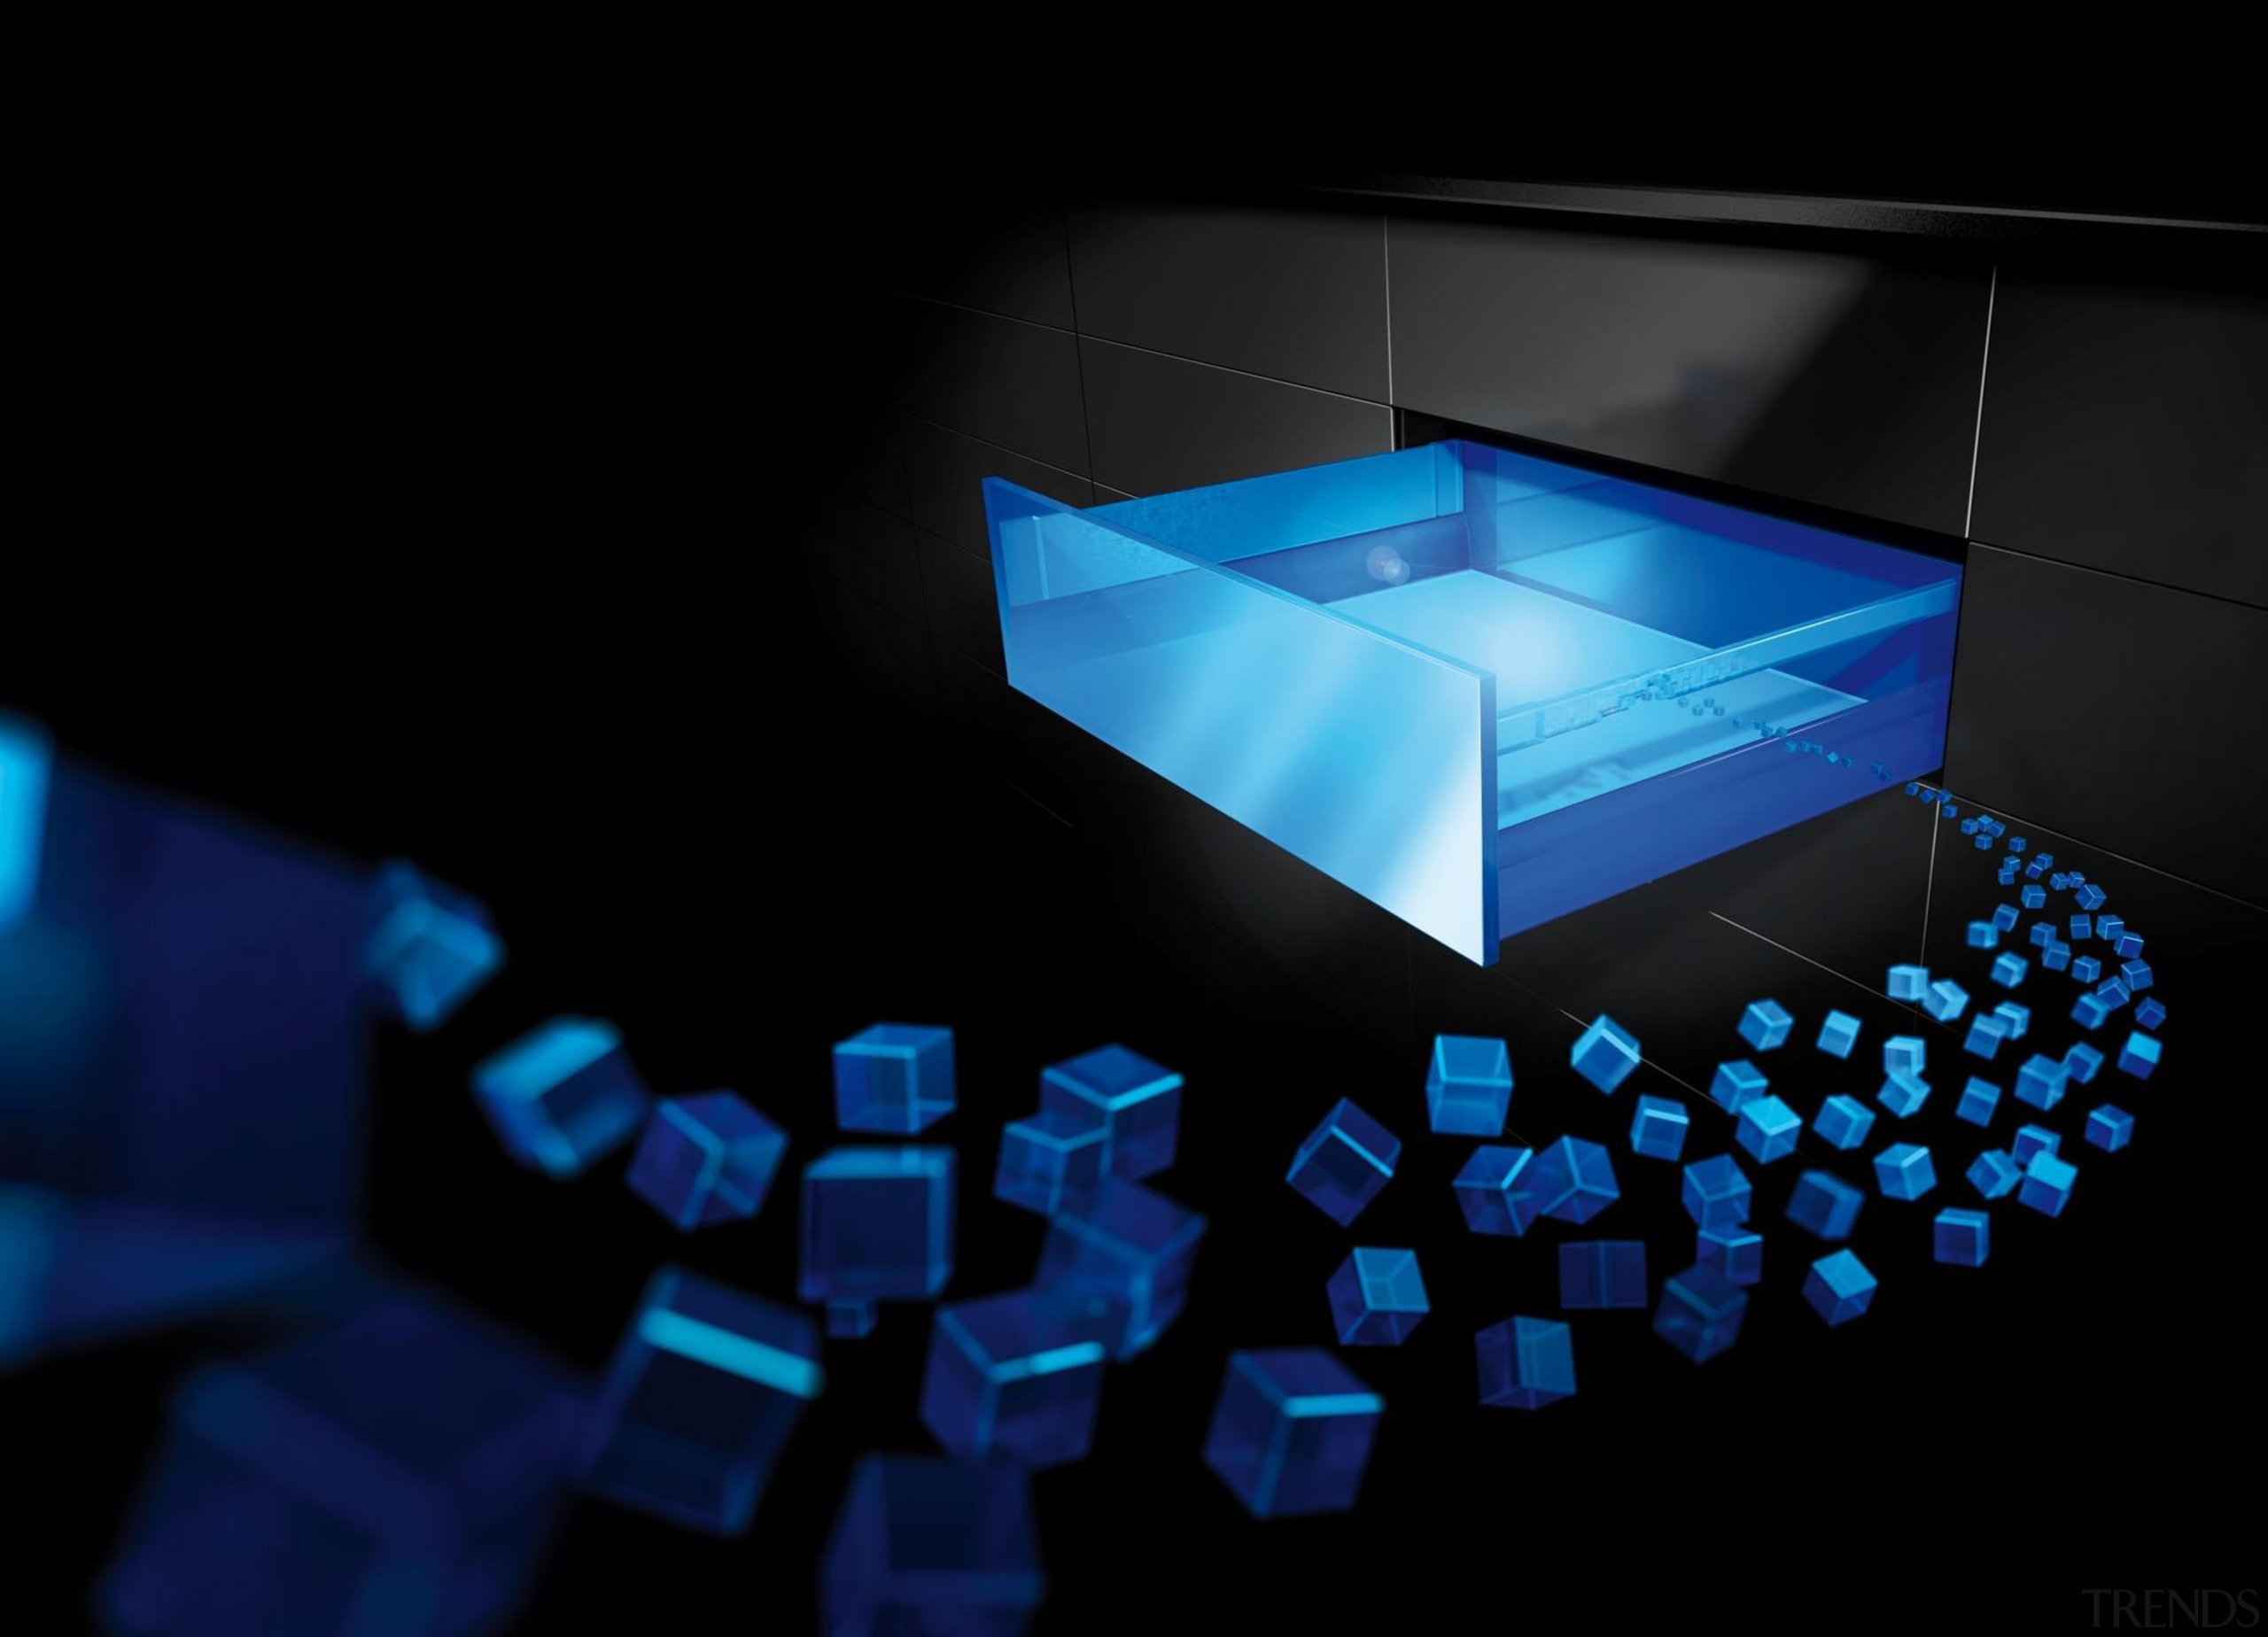 The ArciTech platform concept provides the capability of blue, computer wallpaper, light, lighting, product design, technology, black